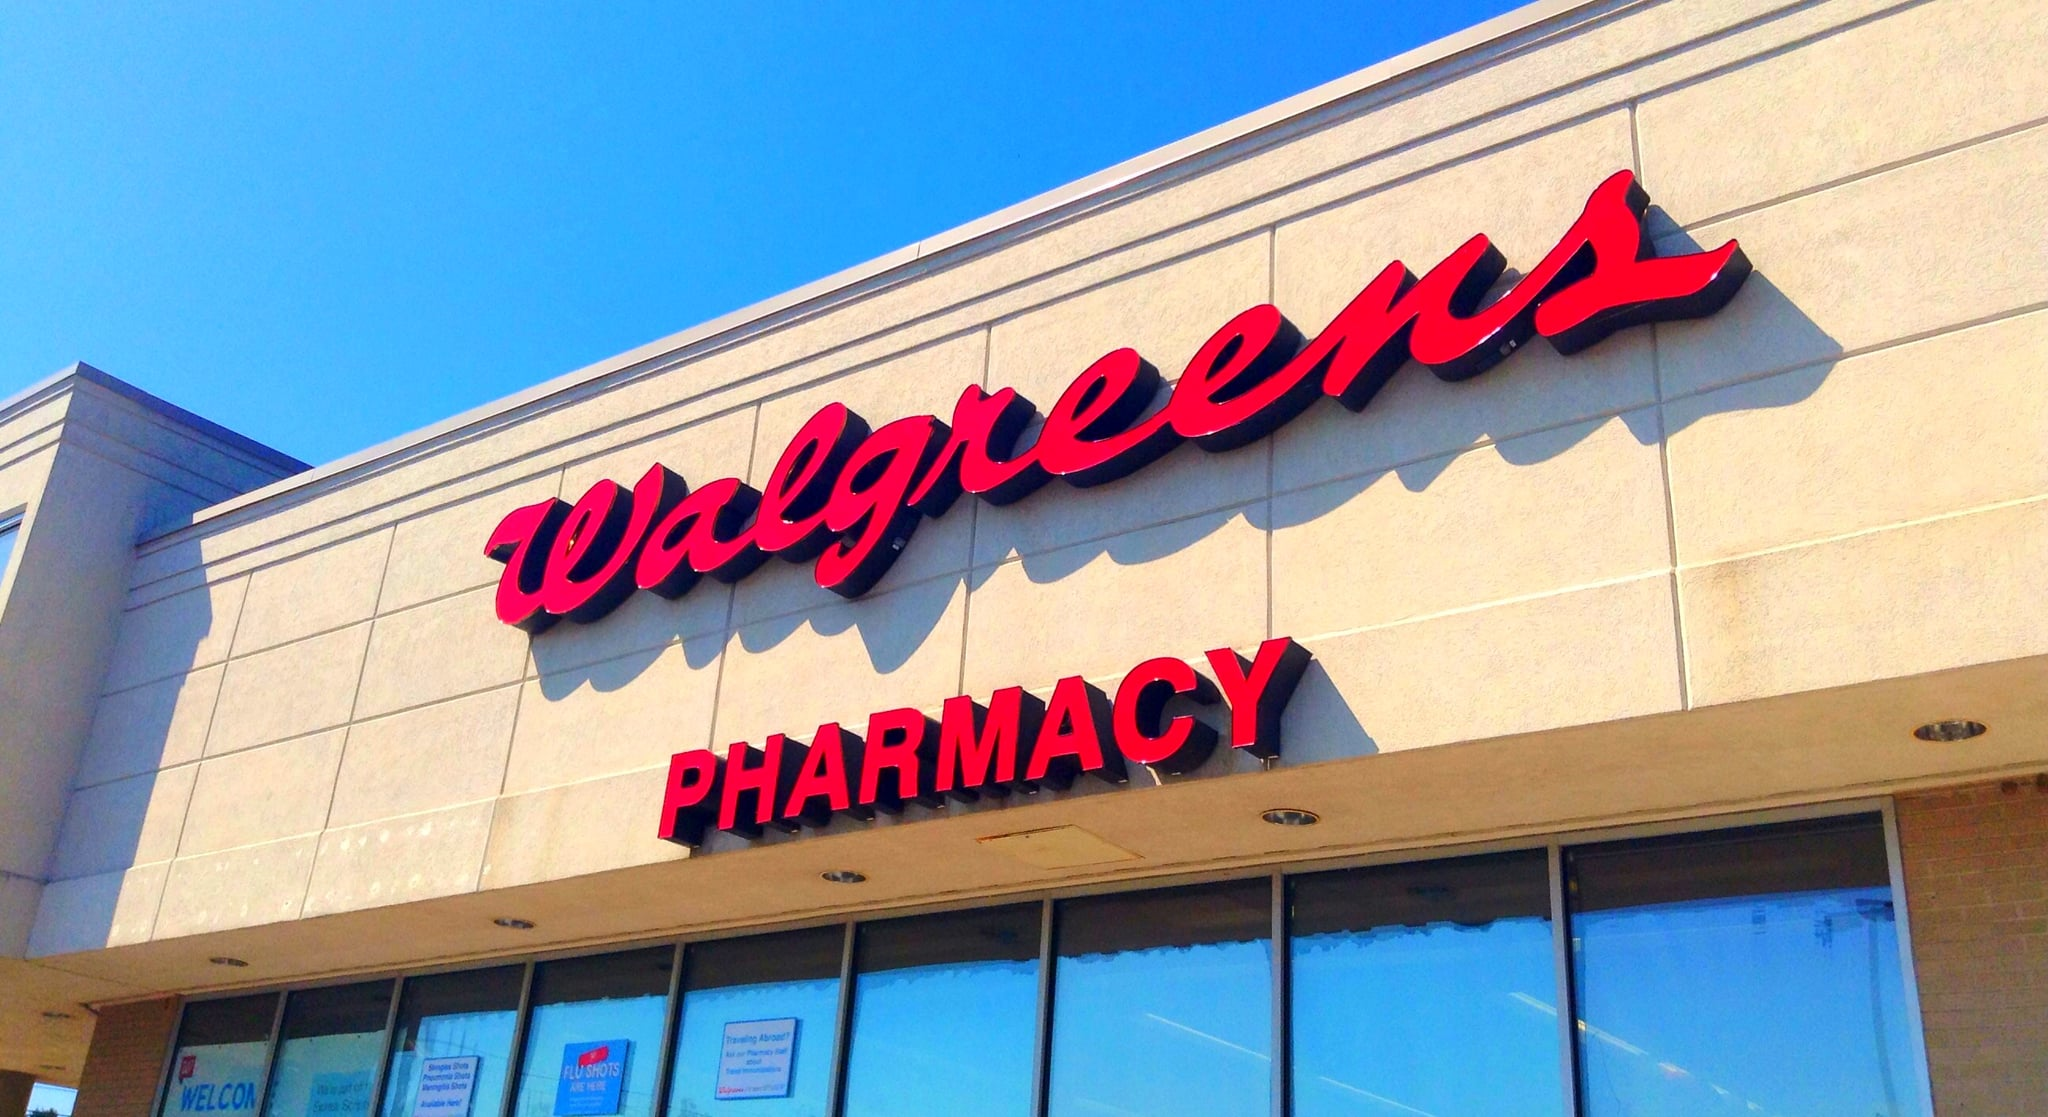 Employees at home for walgreens - Share this link copy walgreens